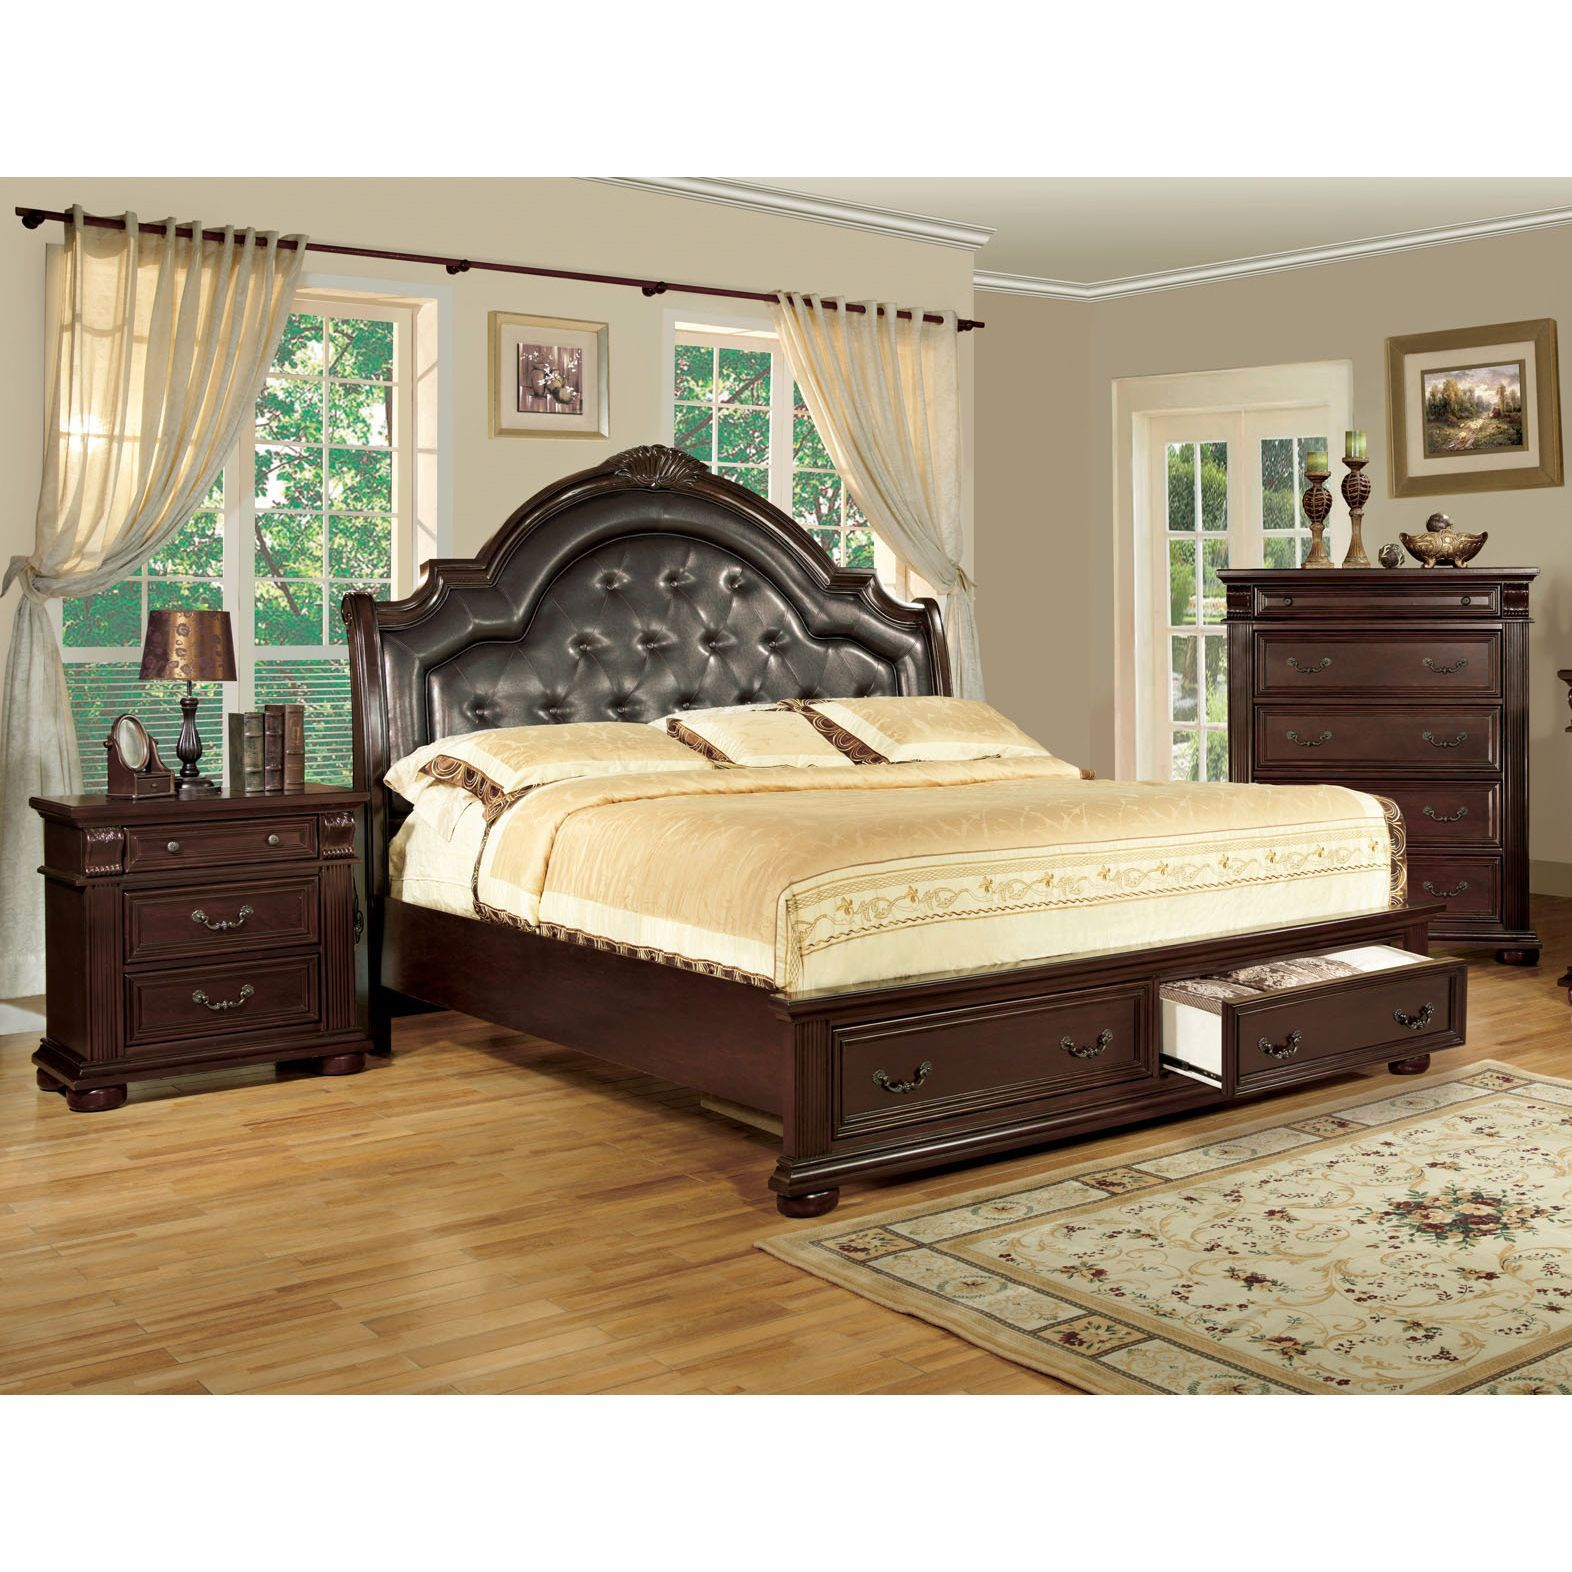 Best Furniture Of America Bis Traditional Cherry 3 Piece 400 x 300